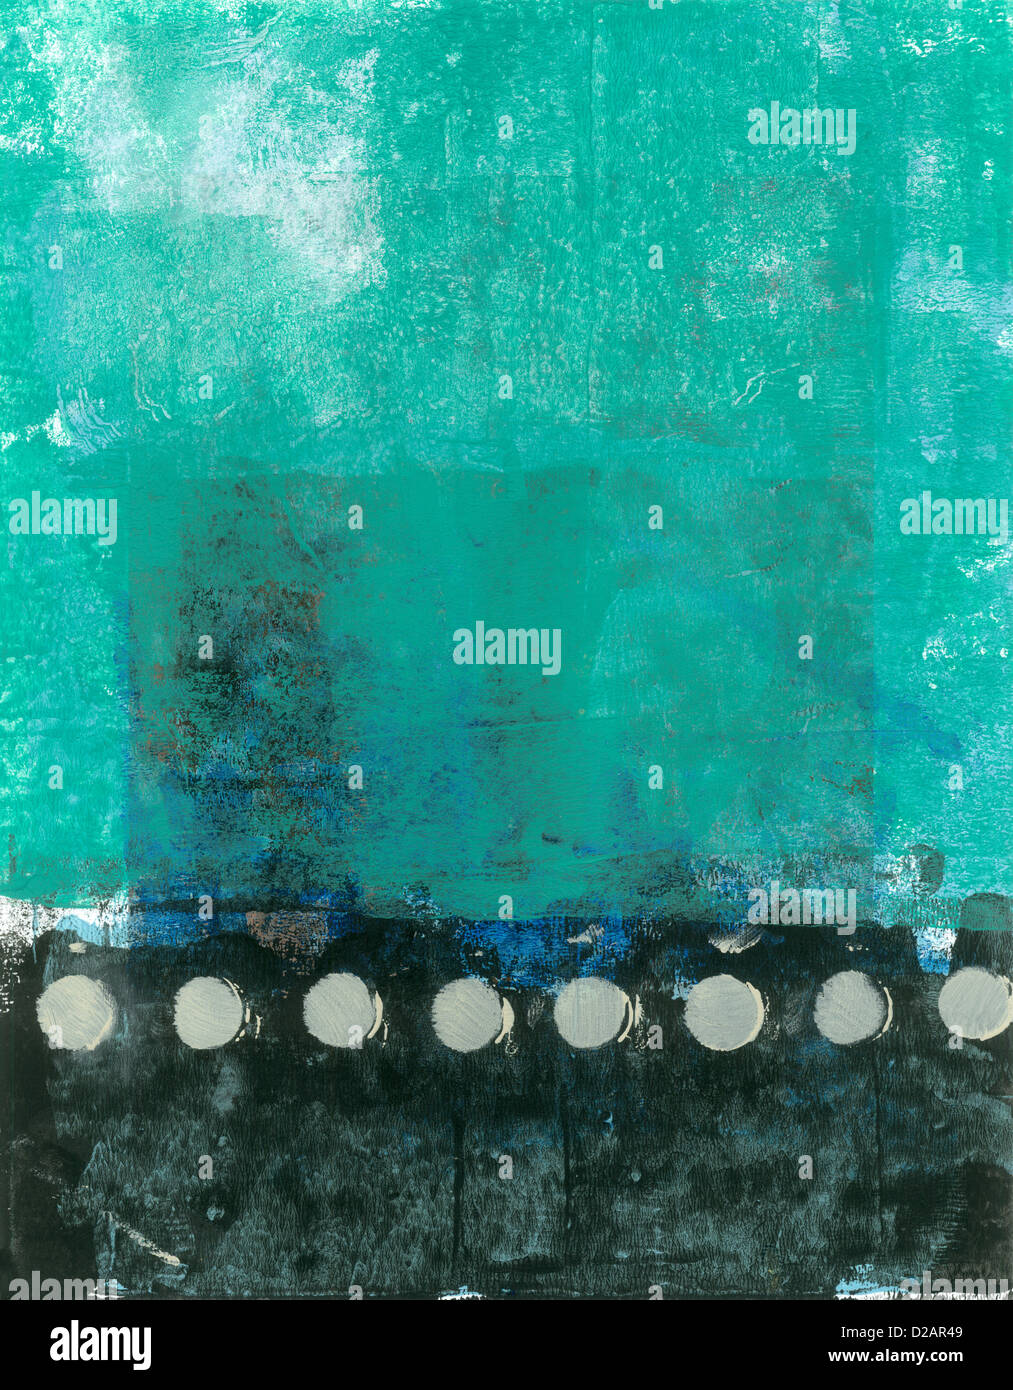 Abstract Teal e verniciatura nera con toni beige. Immagini Stock